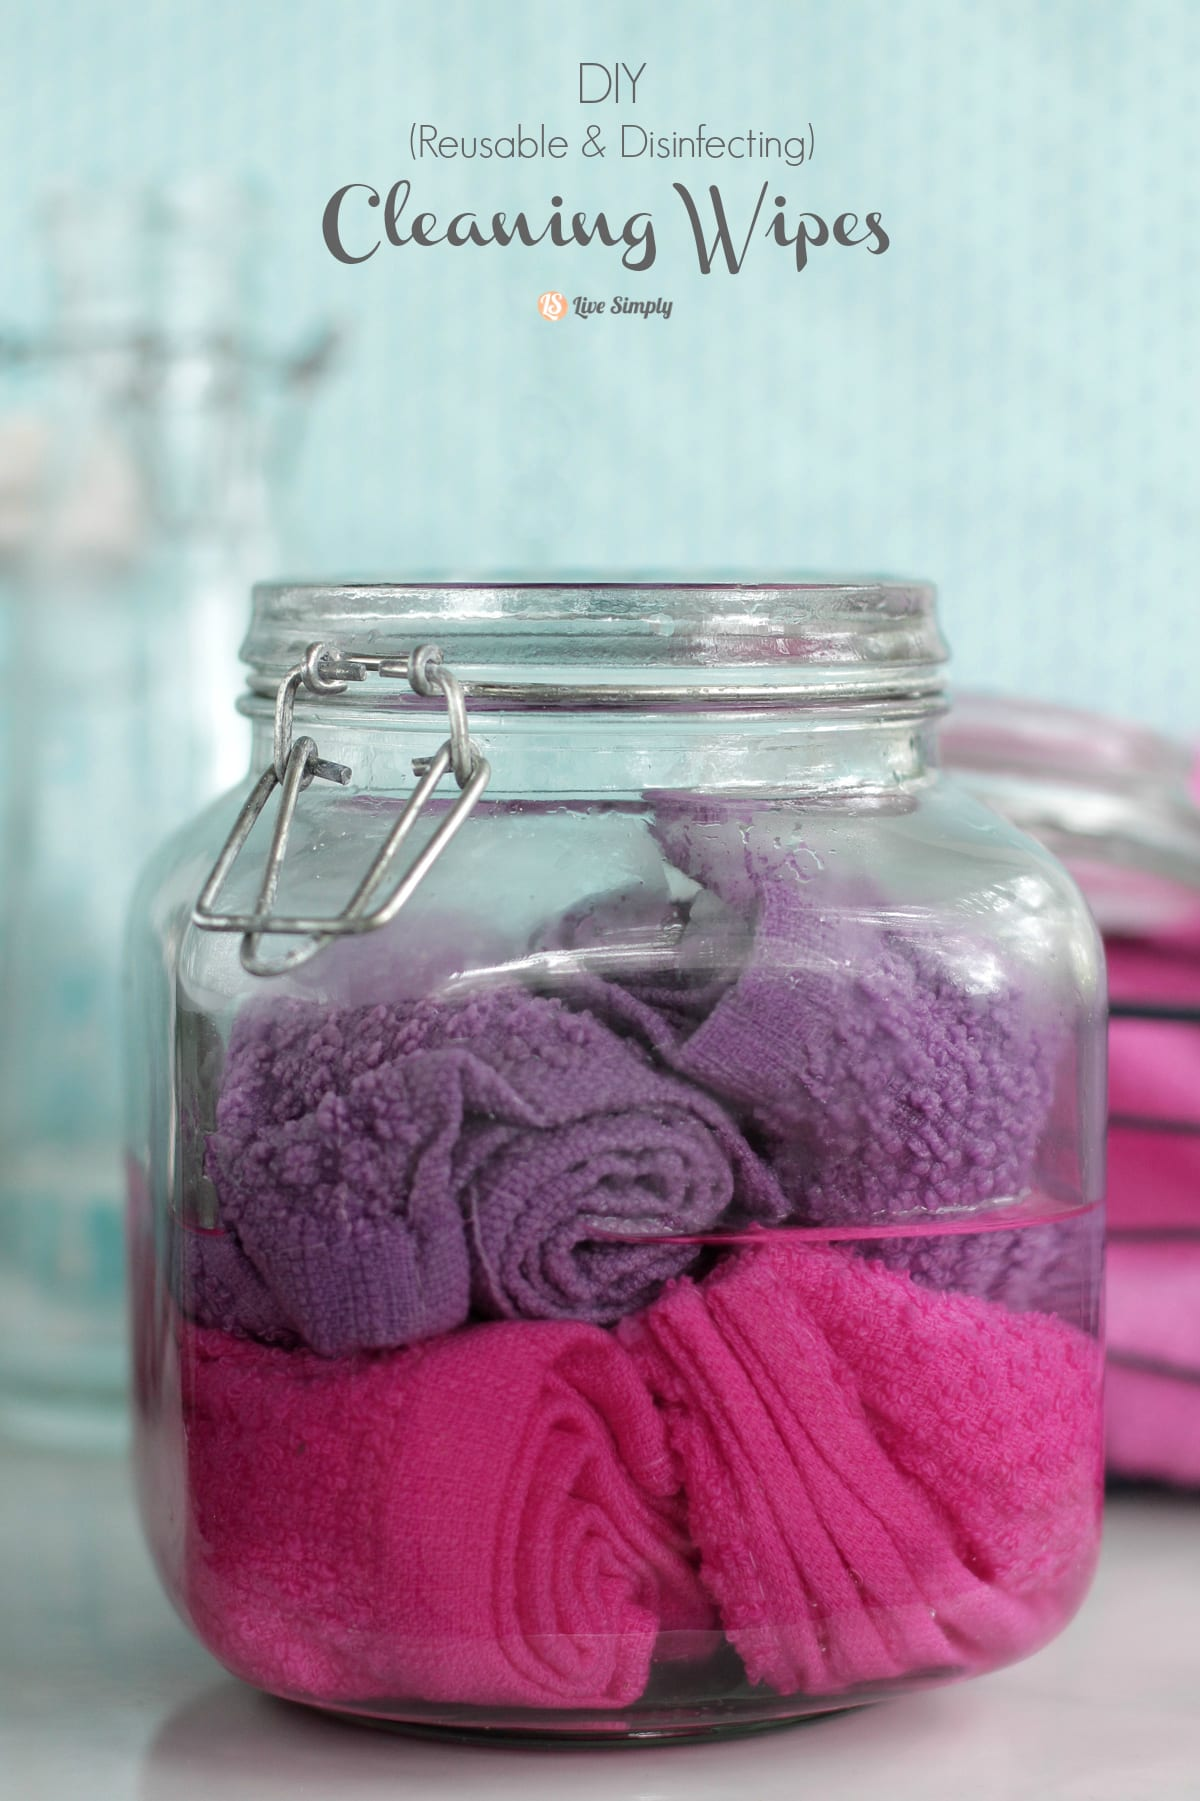 DIY Reusable cleaning wipes